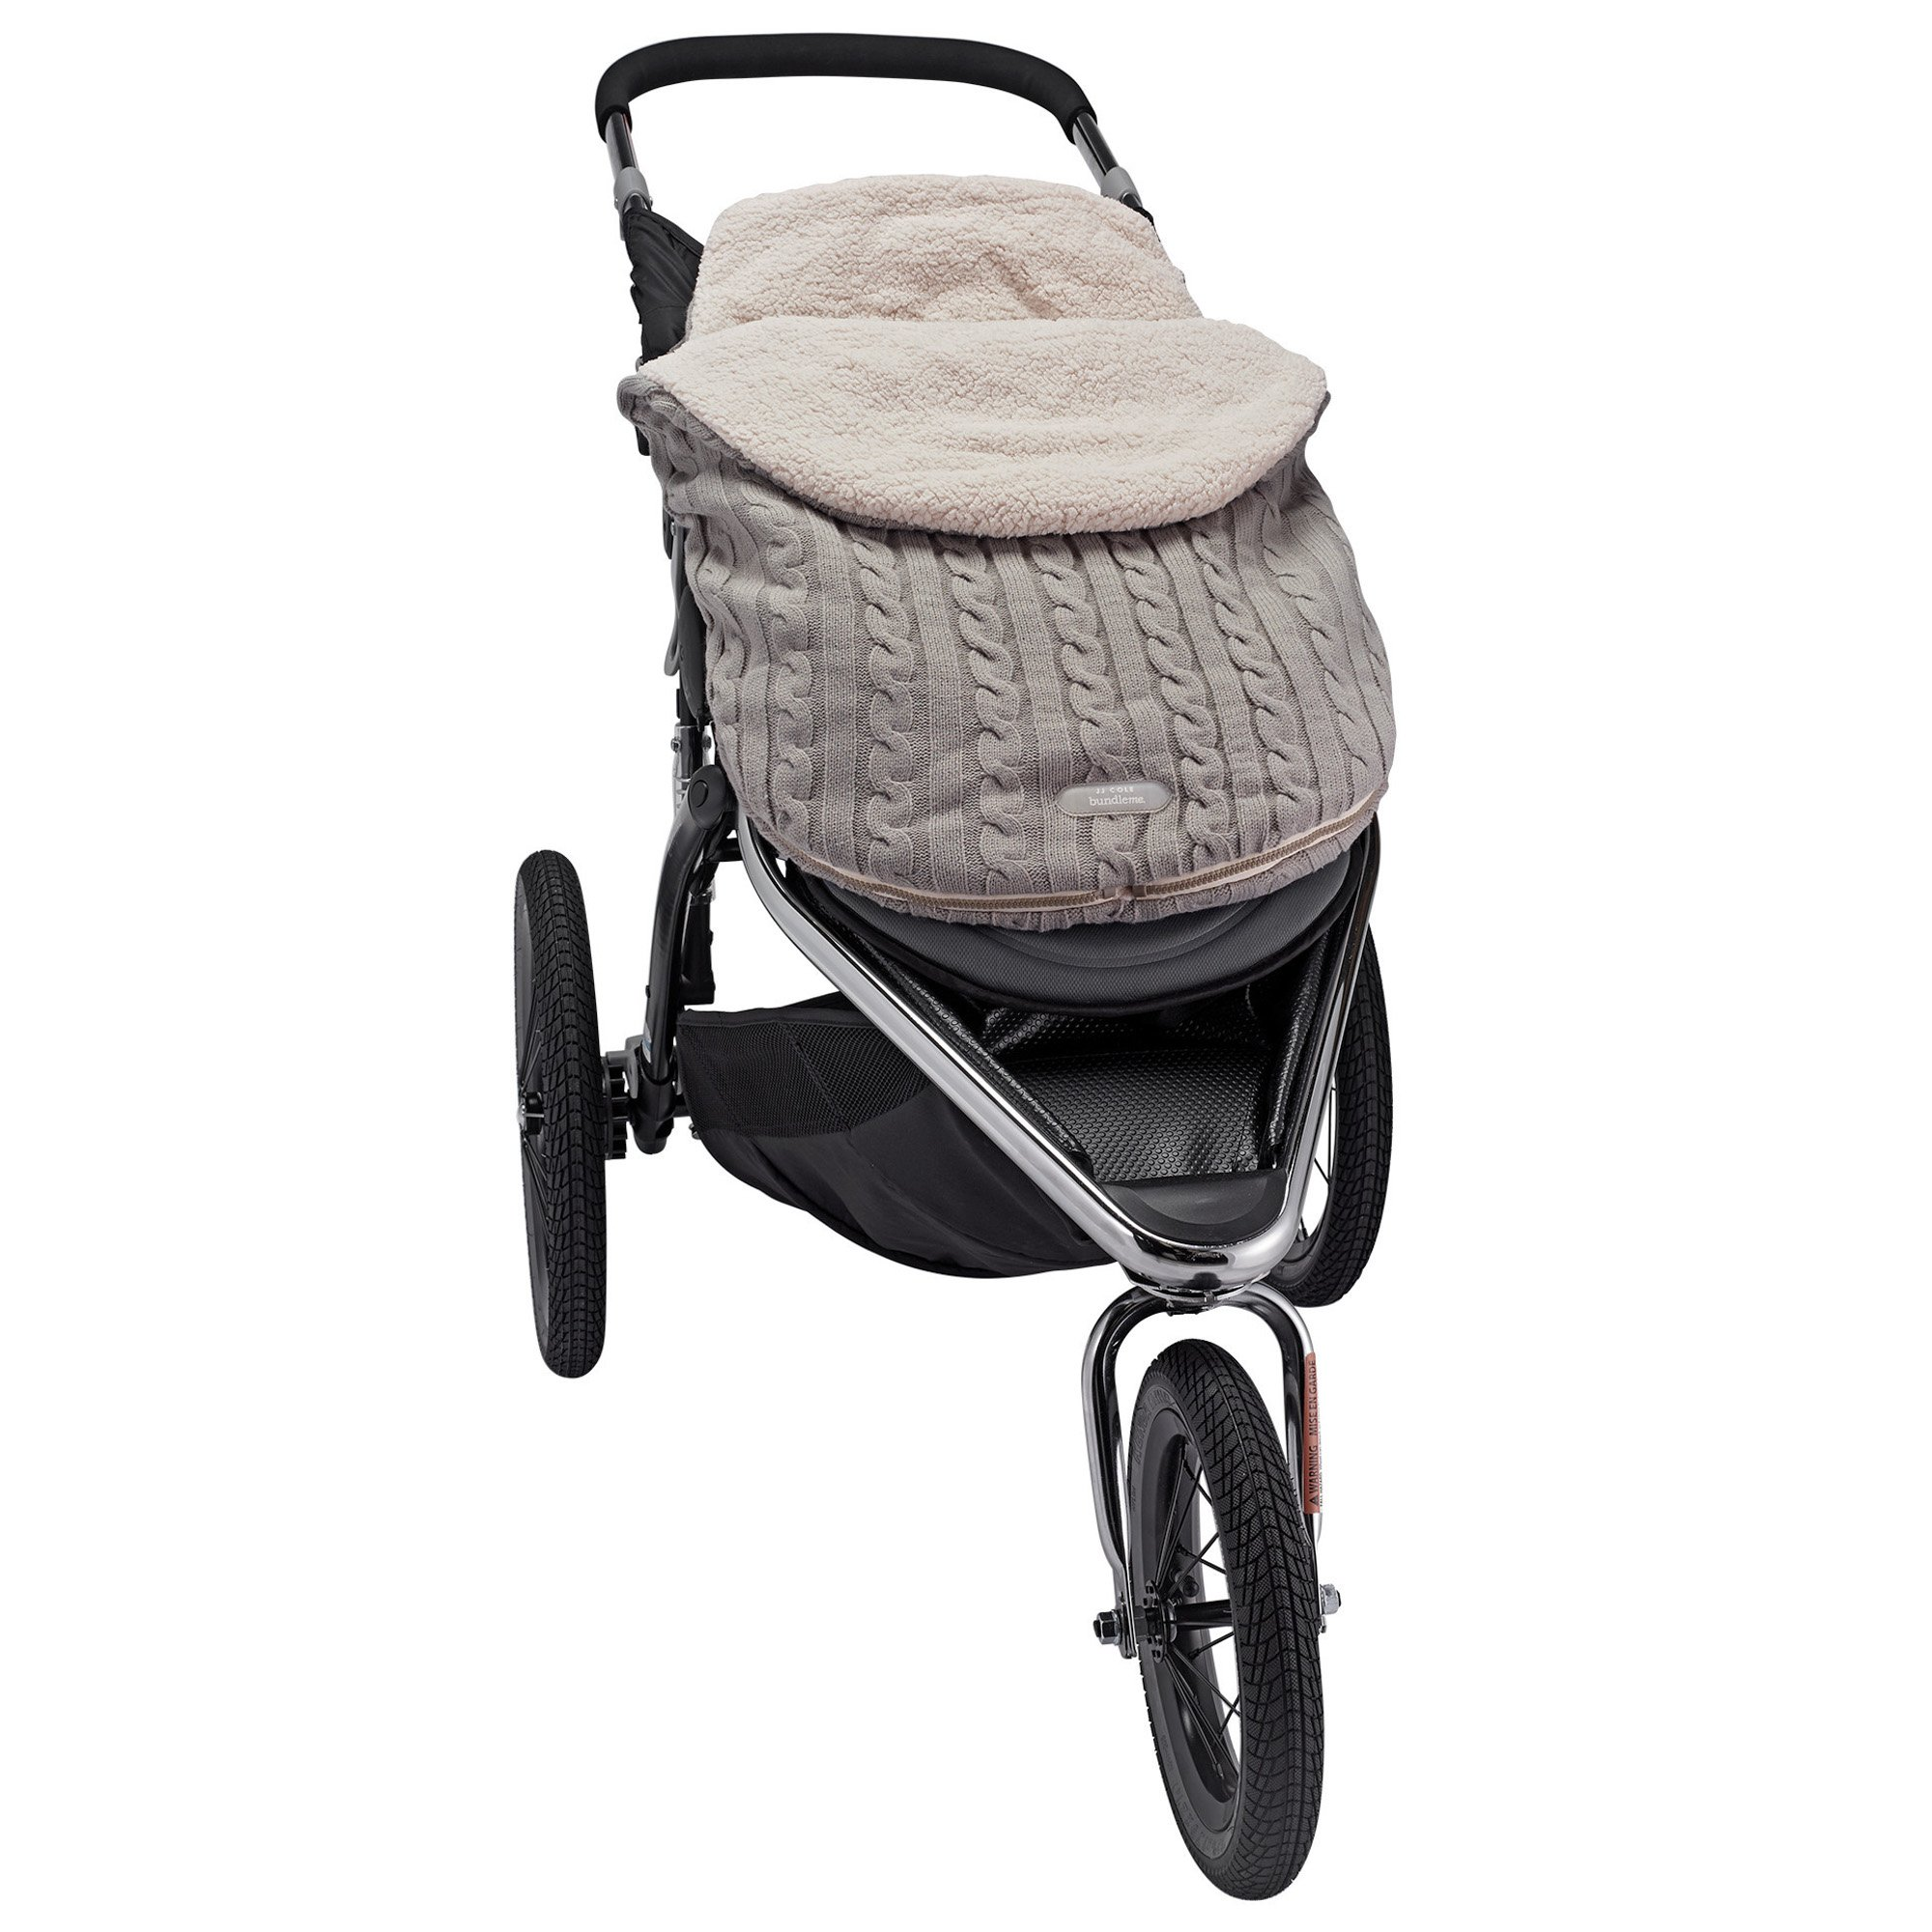 JJ Cole - Knit Bundleme Set, Blanket Cover to Protect Baby from Cold Weather with Car Seats and Strollers, Graphite, Birth to 1 Year by JJ Cole (Image #4)